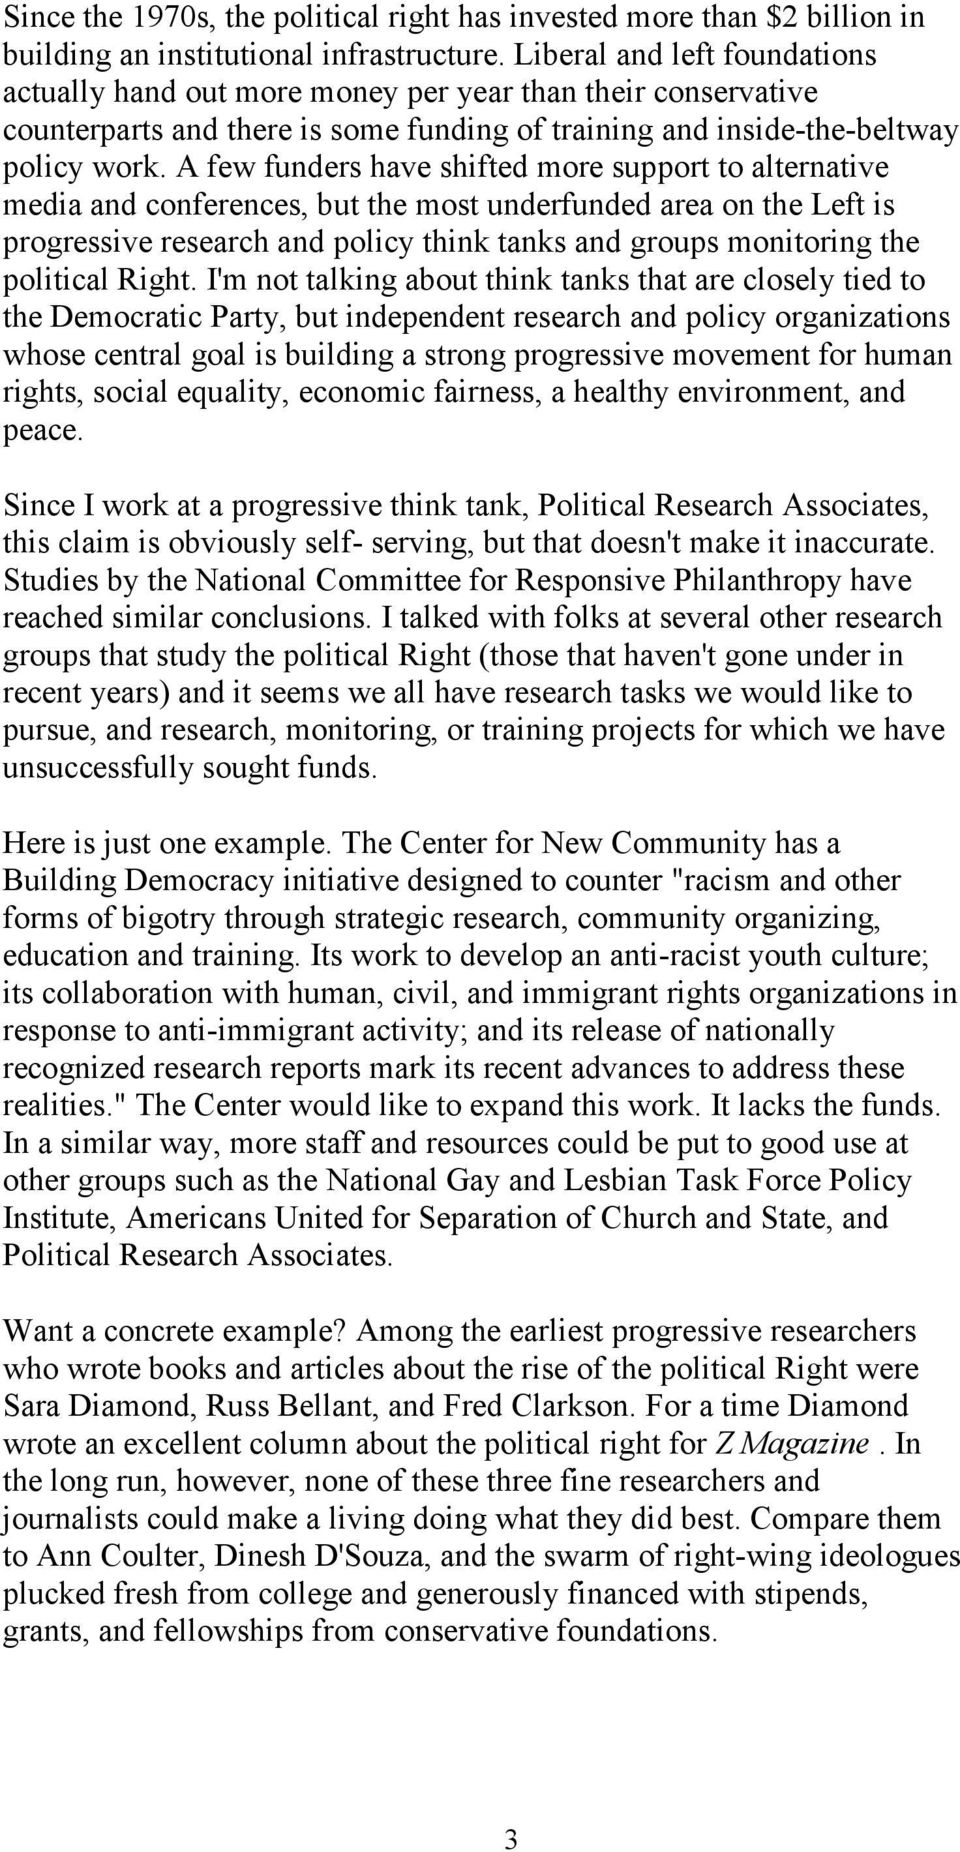 A few funders have shifted more support to alternative media and conferences, but the most underfunded area on the Left is progressive research and policy think tanks and groups monitoring the